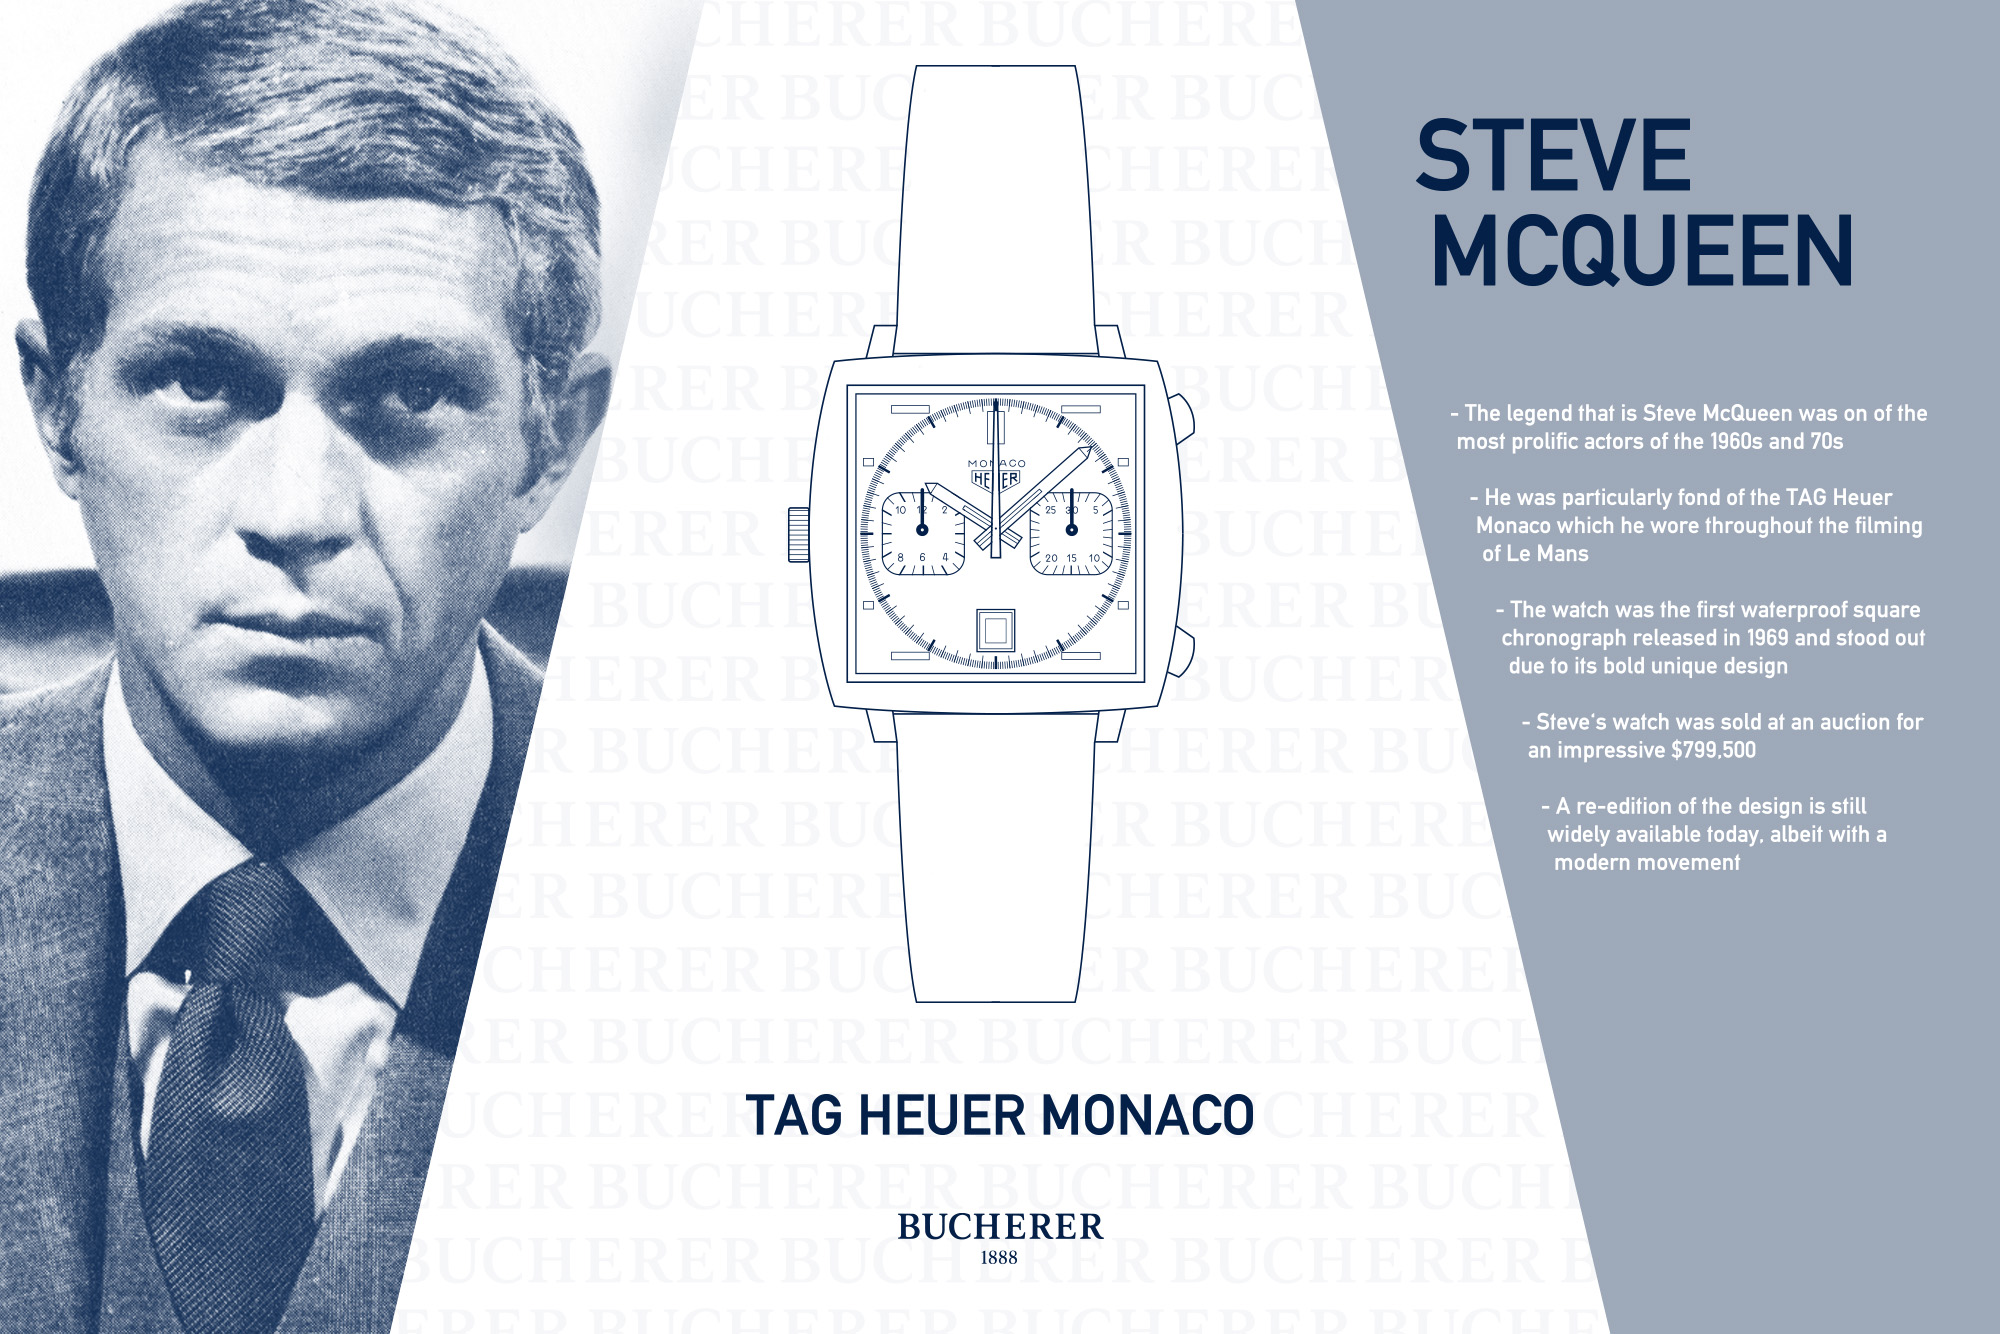 steve-mcqueen-and-his-tag-heuer-monaco-watch